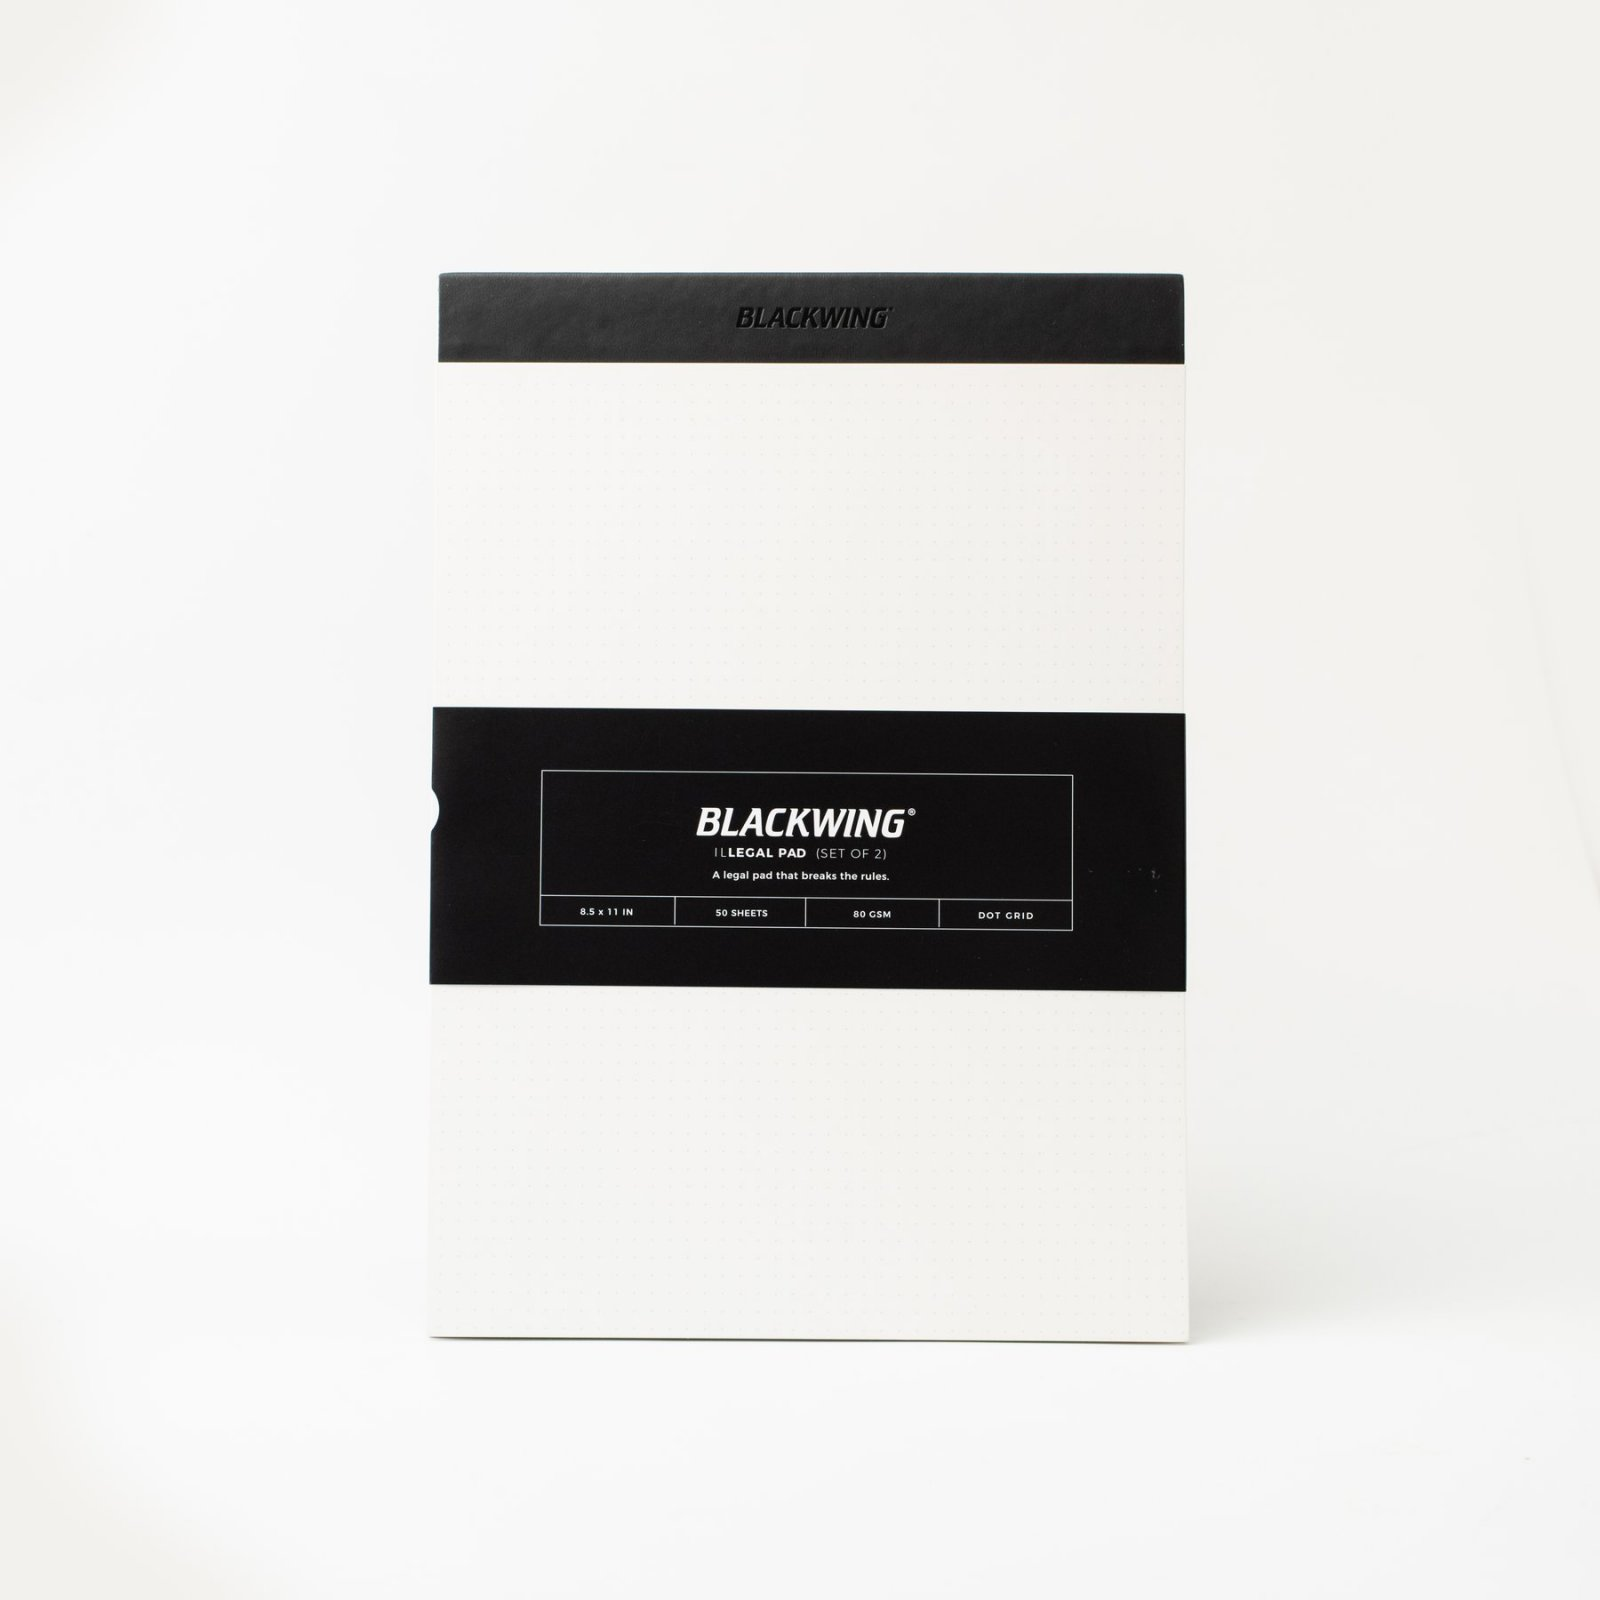 Blackwing Illegal Pad - Set of 2 - Dot Grid Pages